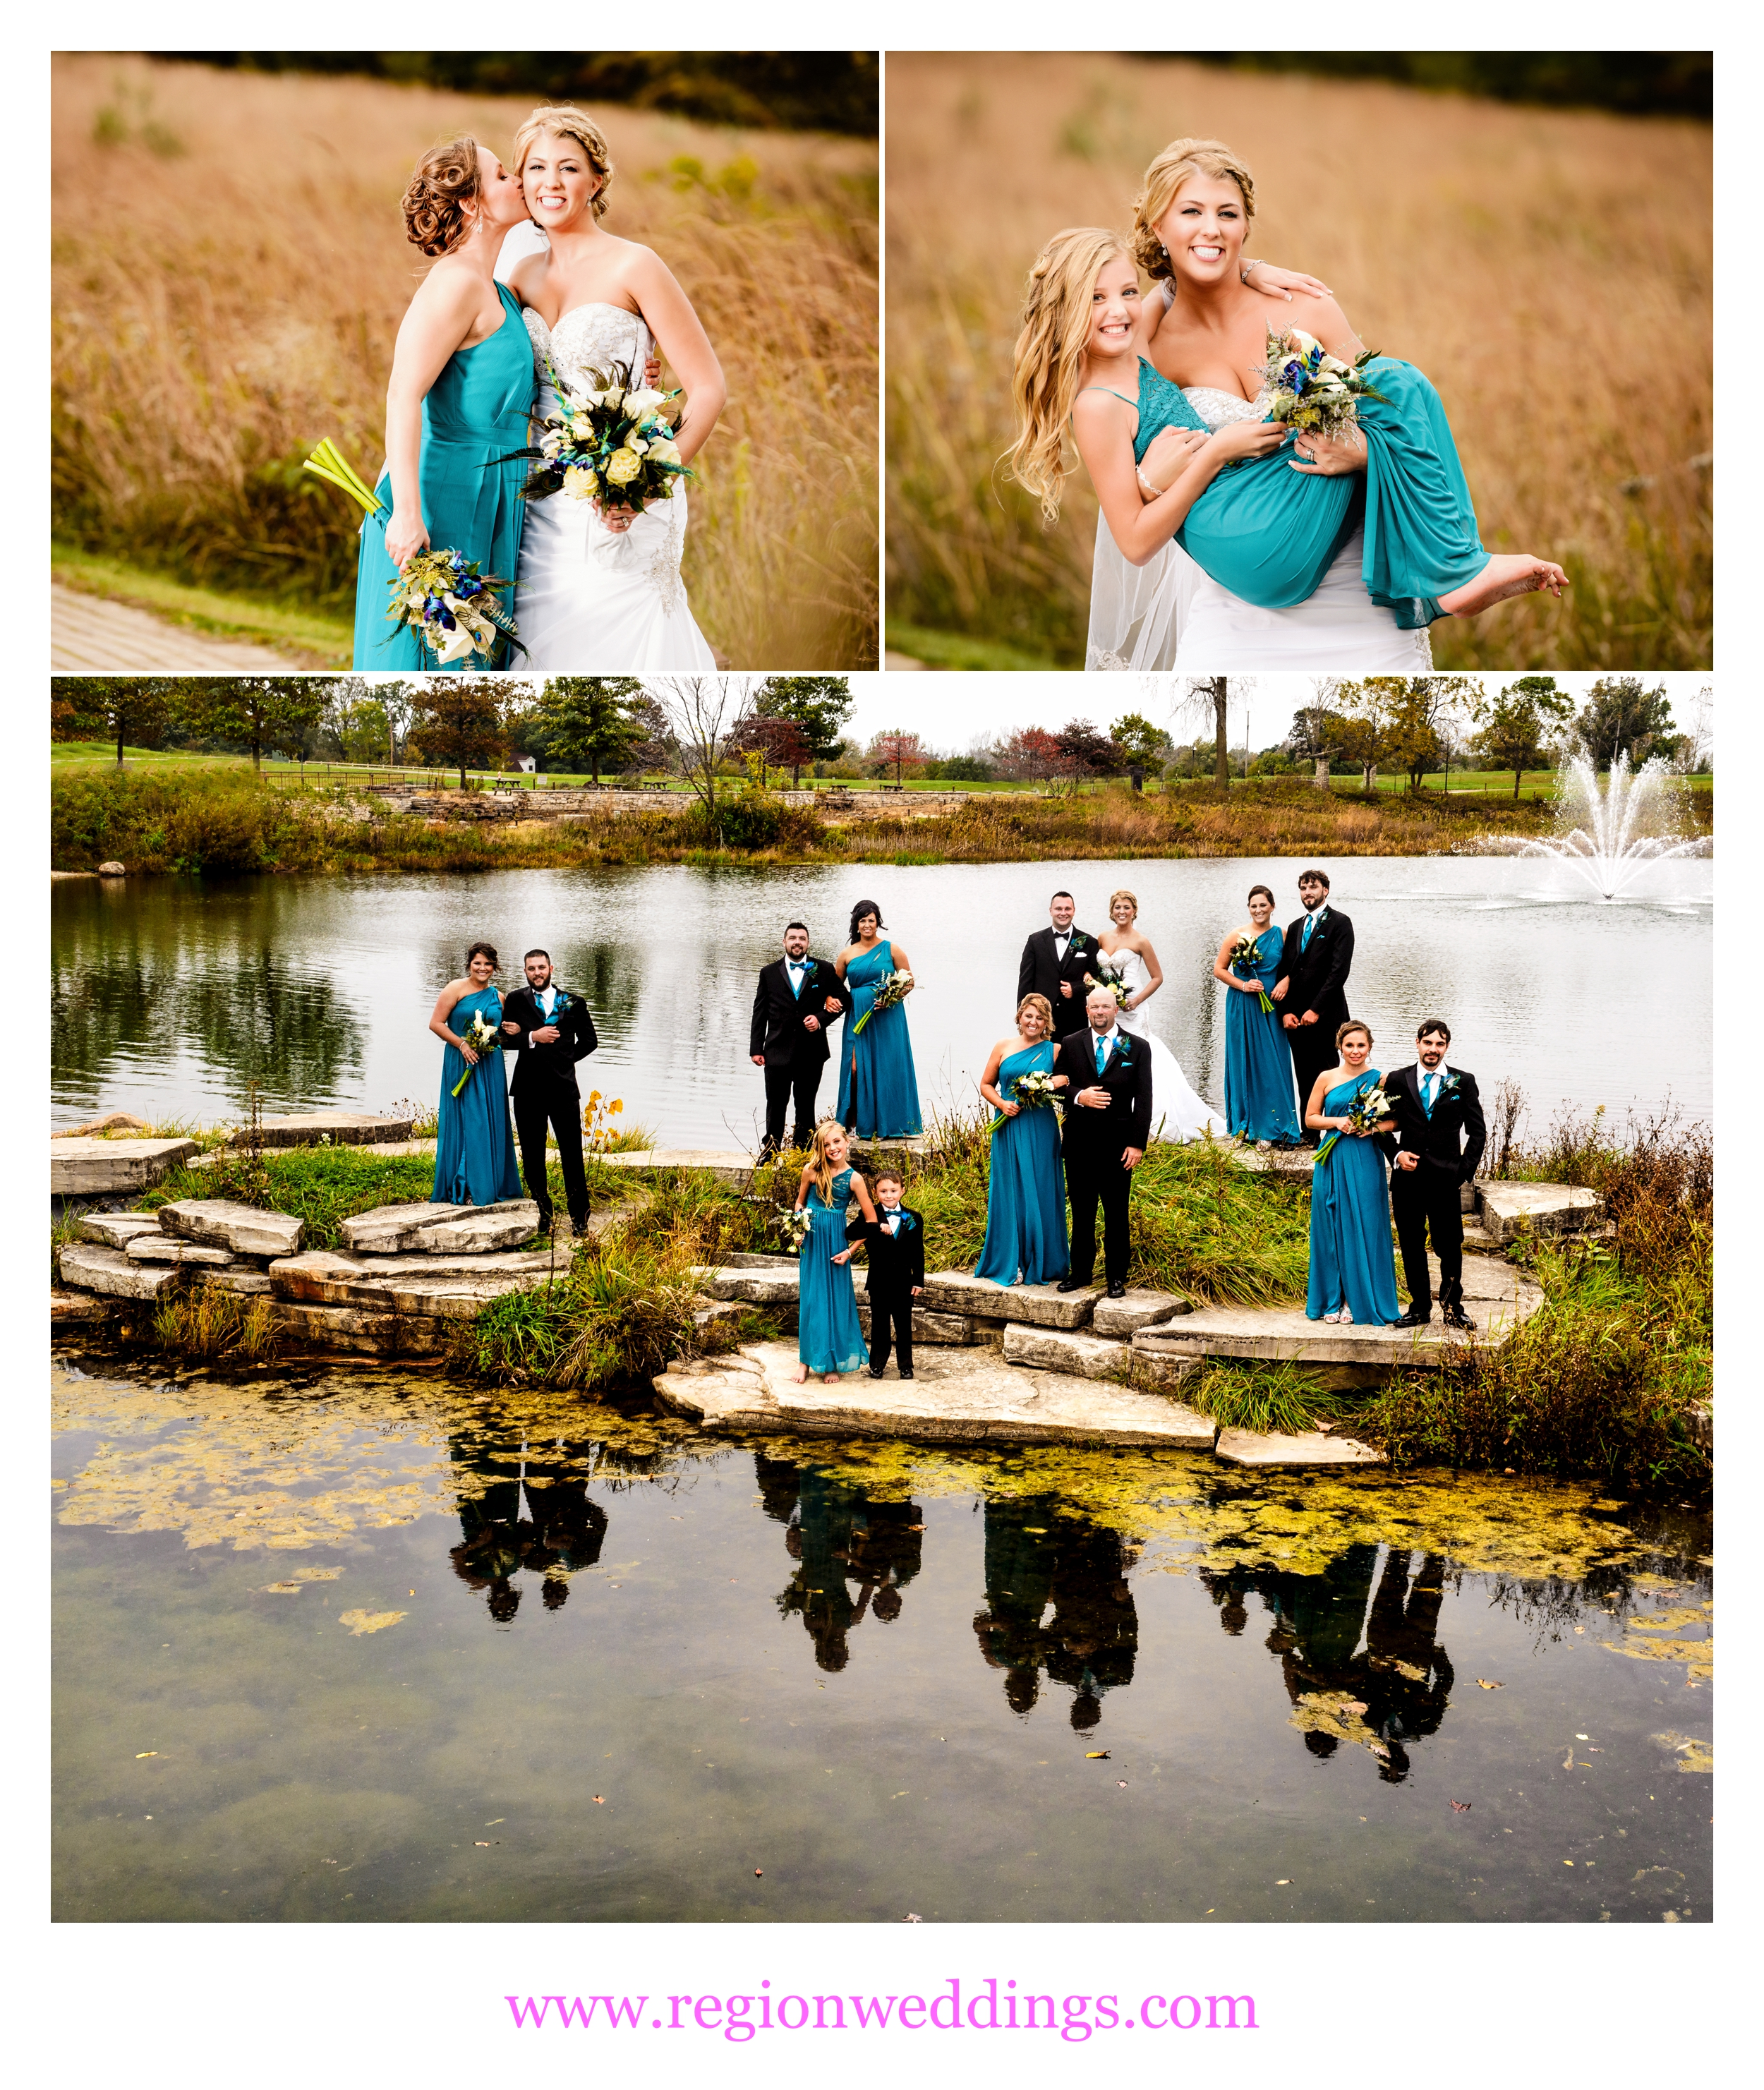 Wedding party photos at Coffee Creek Nature Preserve in Chesterton, Indiana.